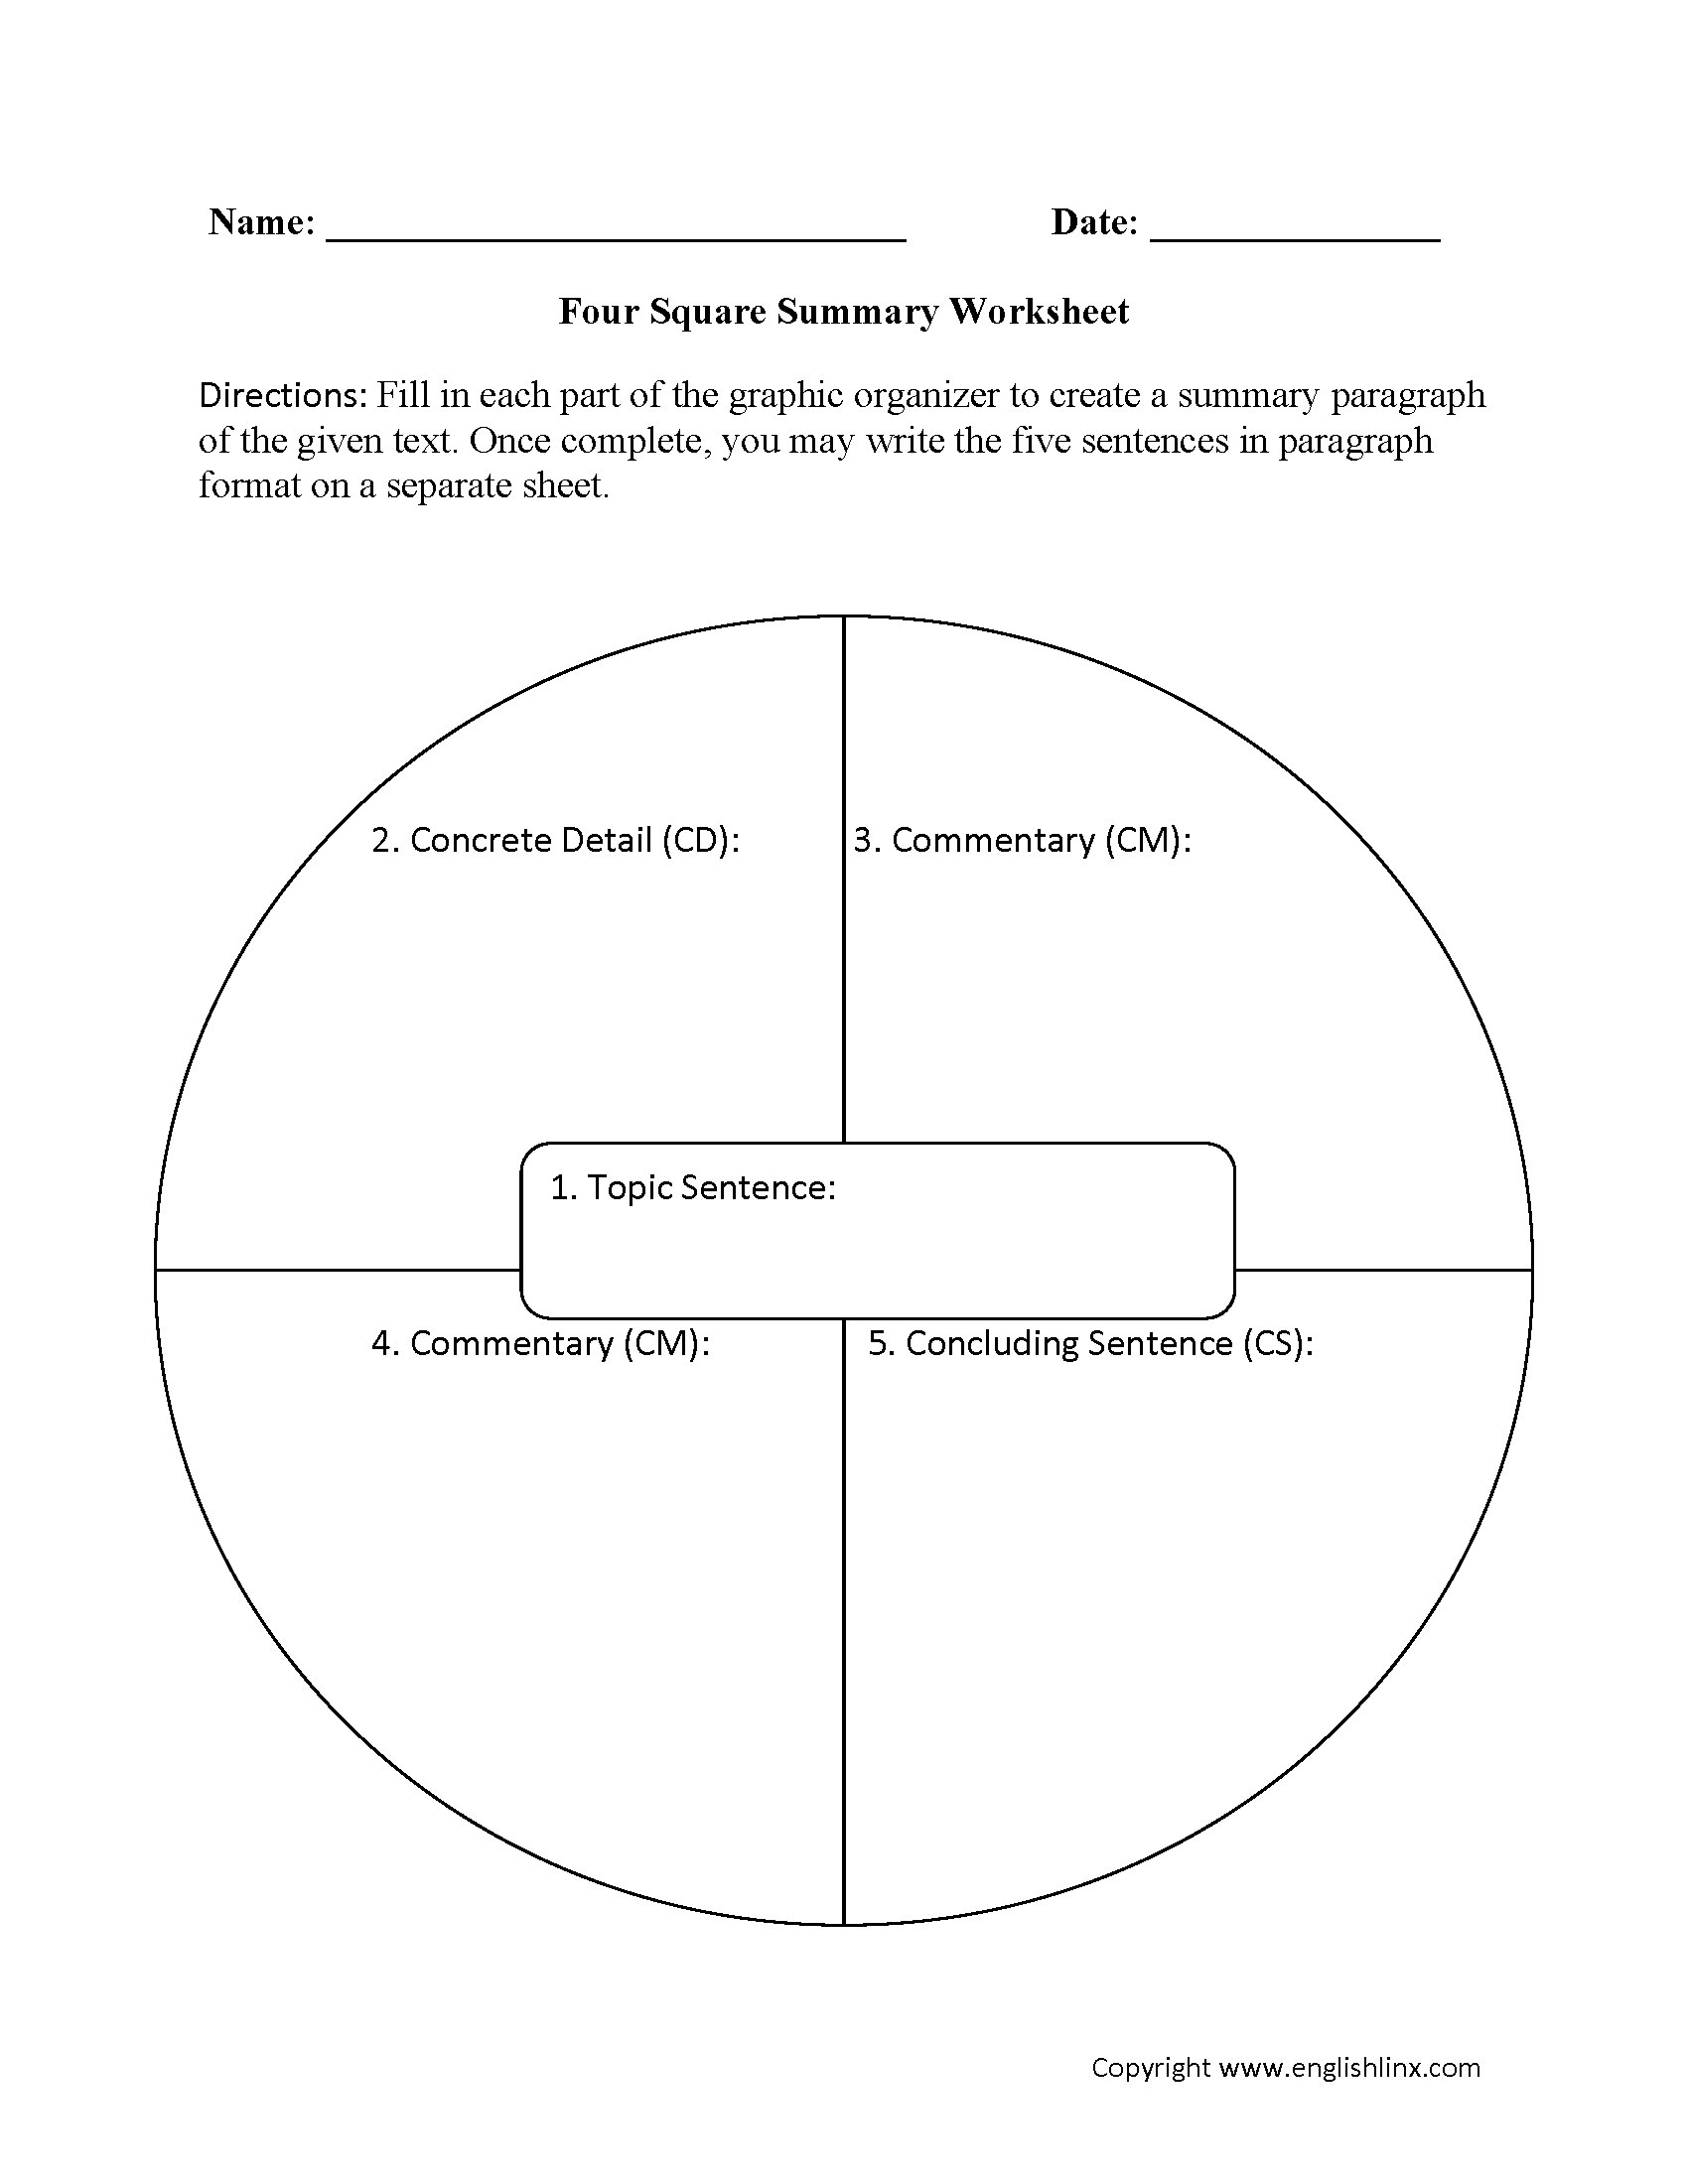 Worksheets Summarizing Worksheet englishlinx com summary worksheets worksheets